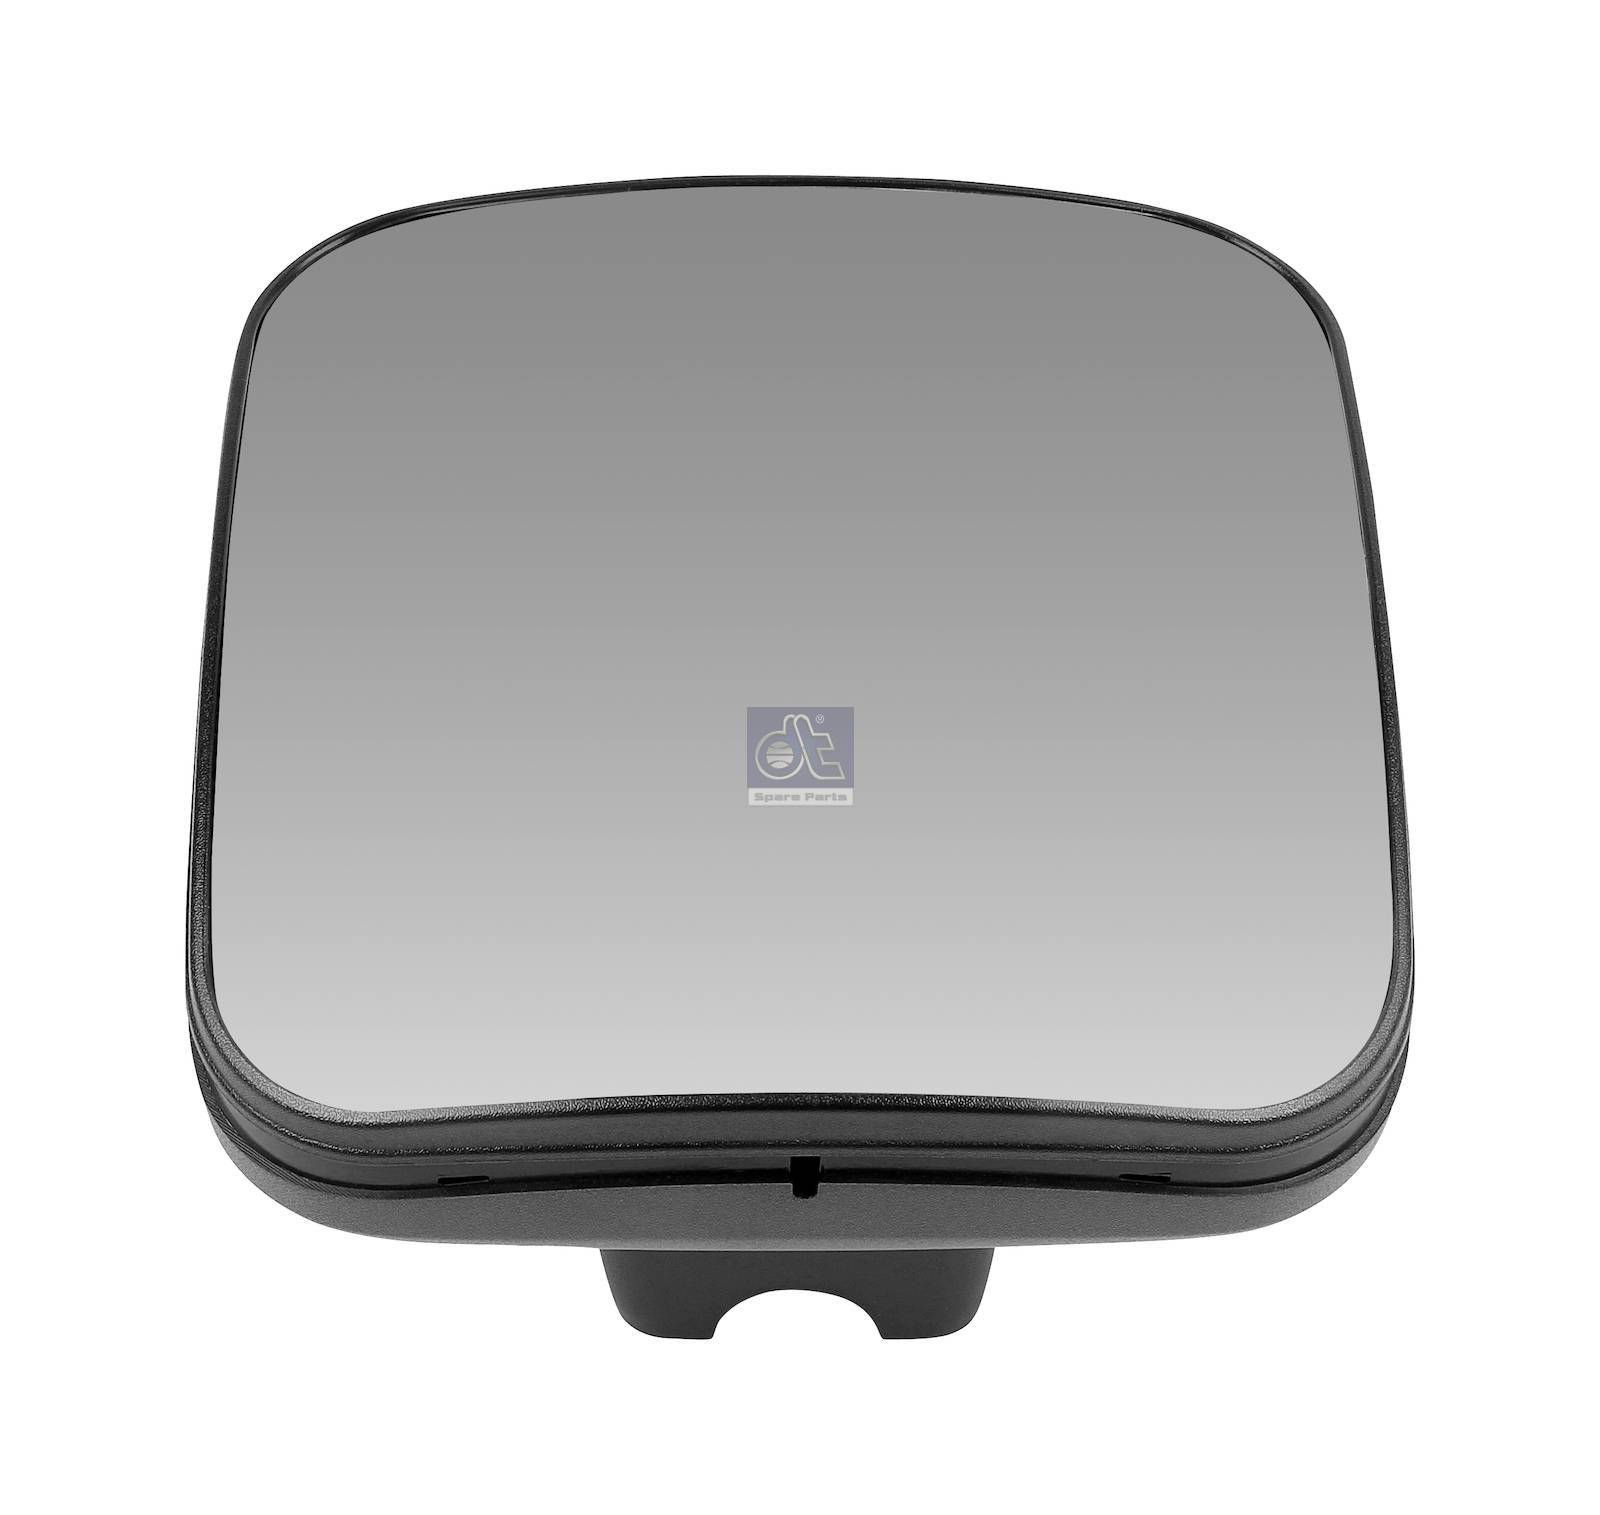 Wide view mirror, heated